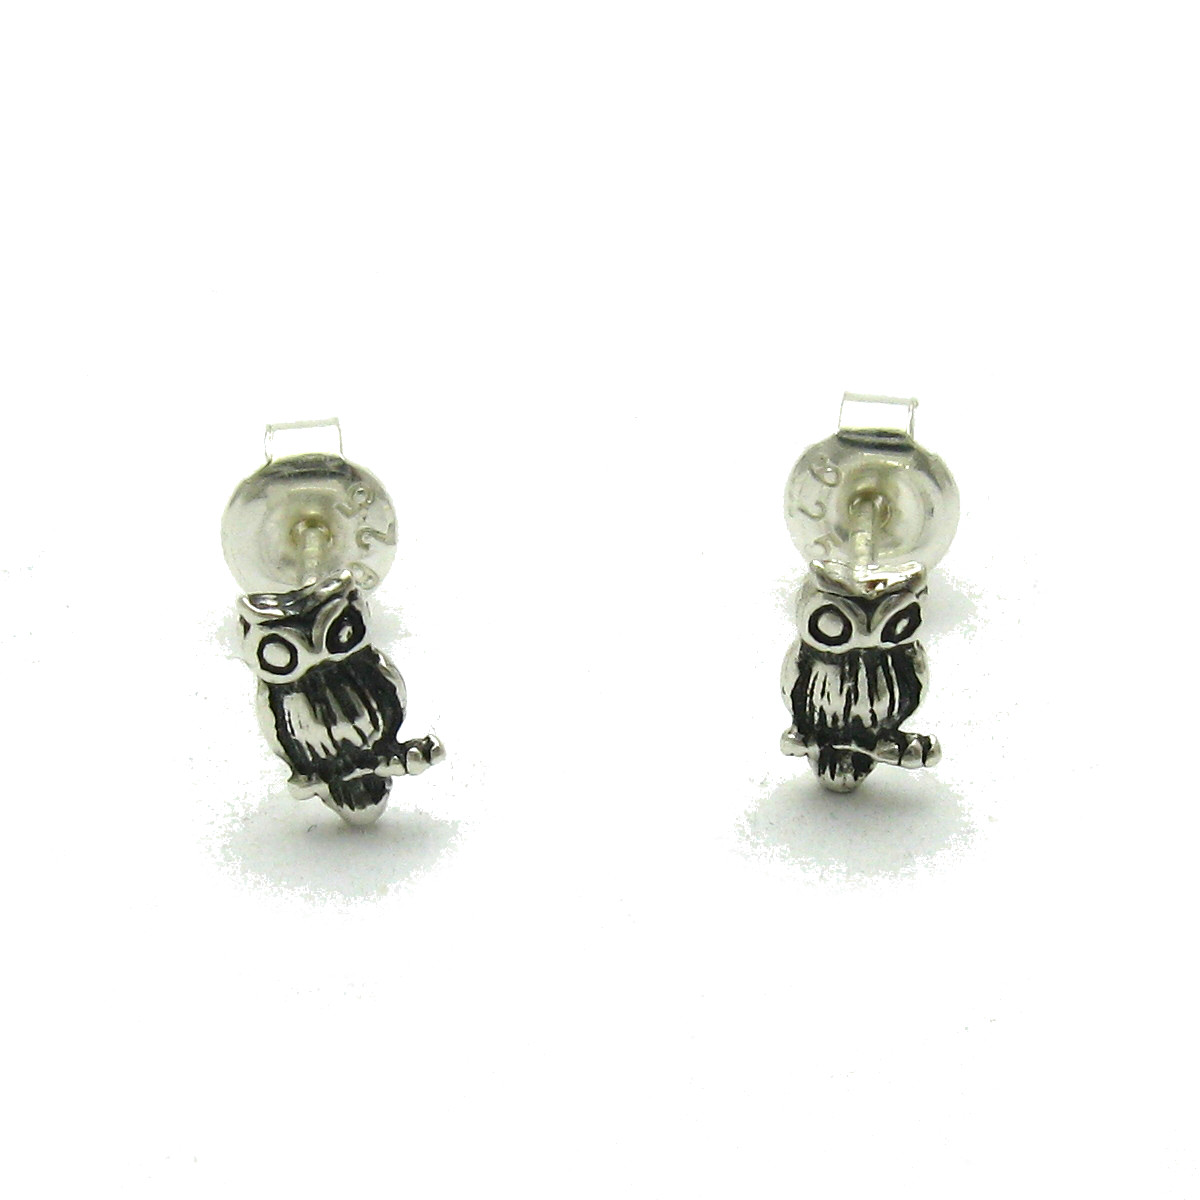 Silver earrings - E000606